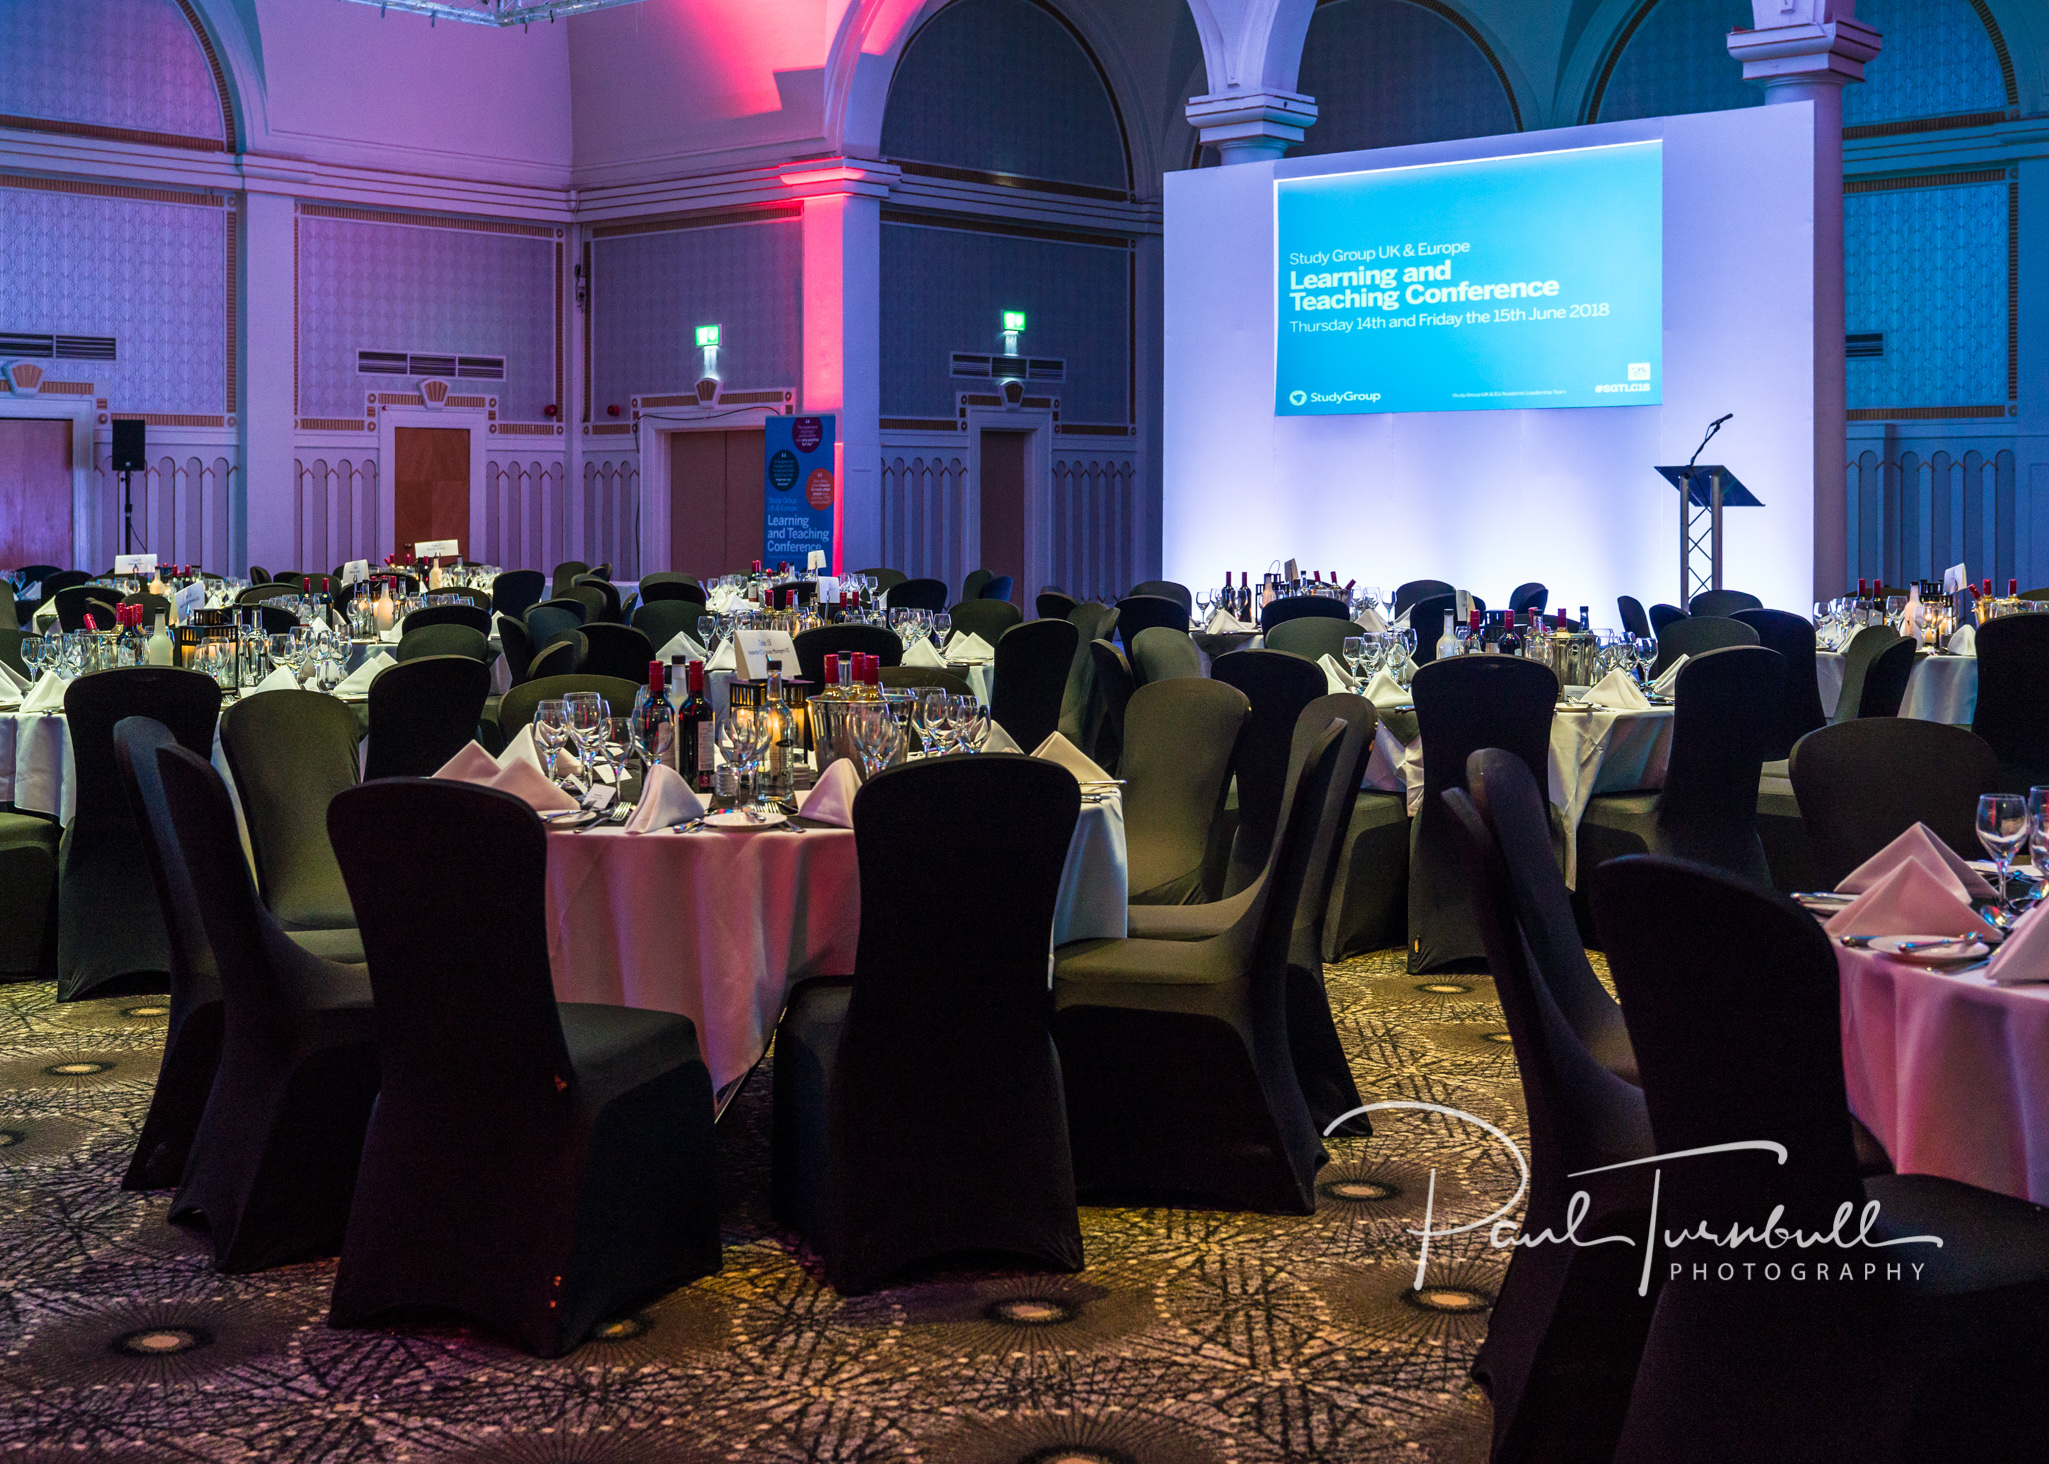 conference-event-photographer-queens-hotel-leeds-yorkshire-004.jpg